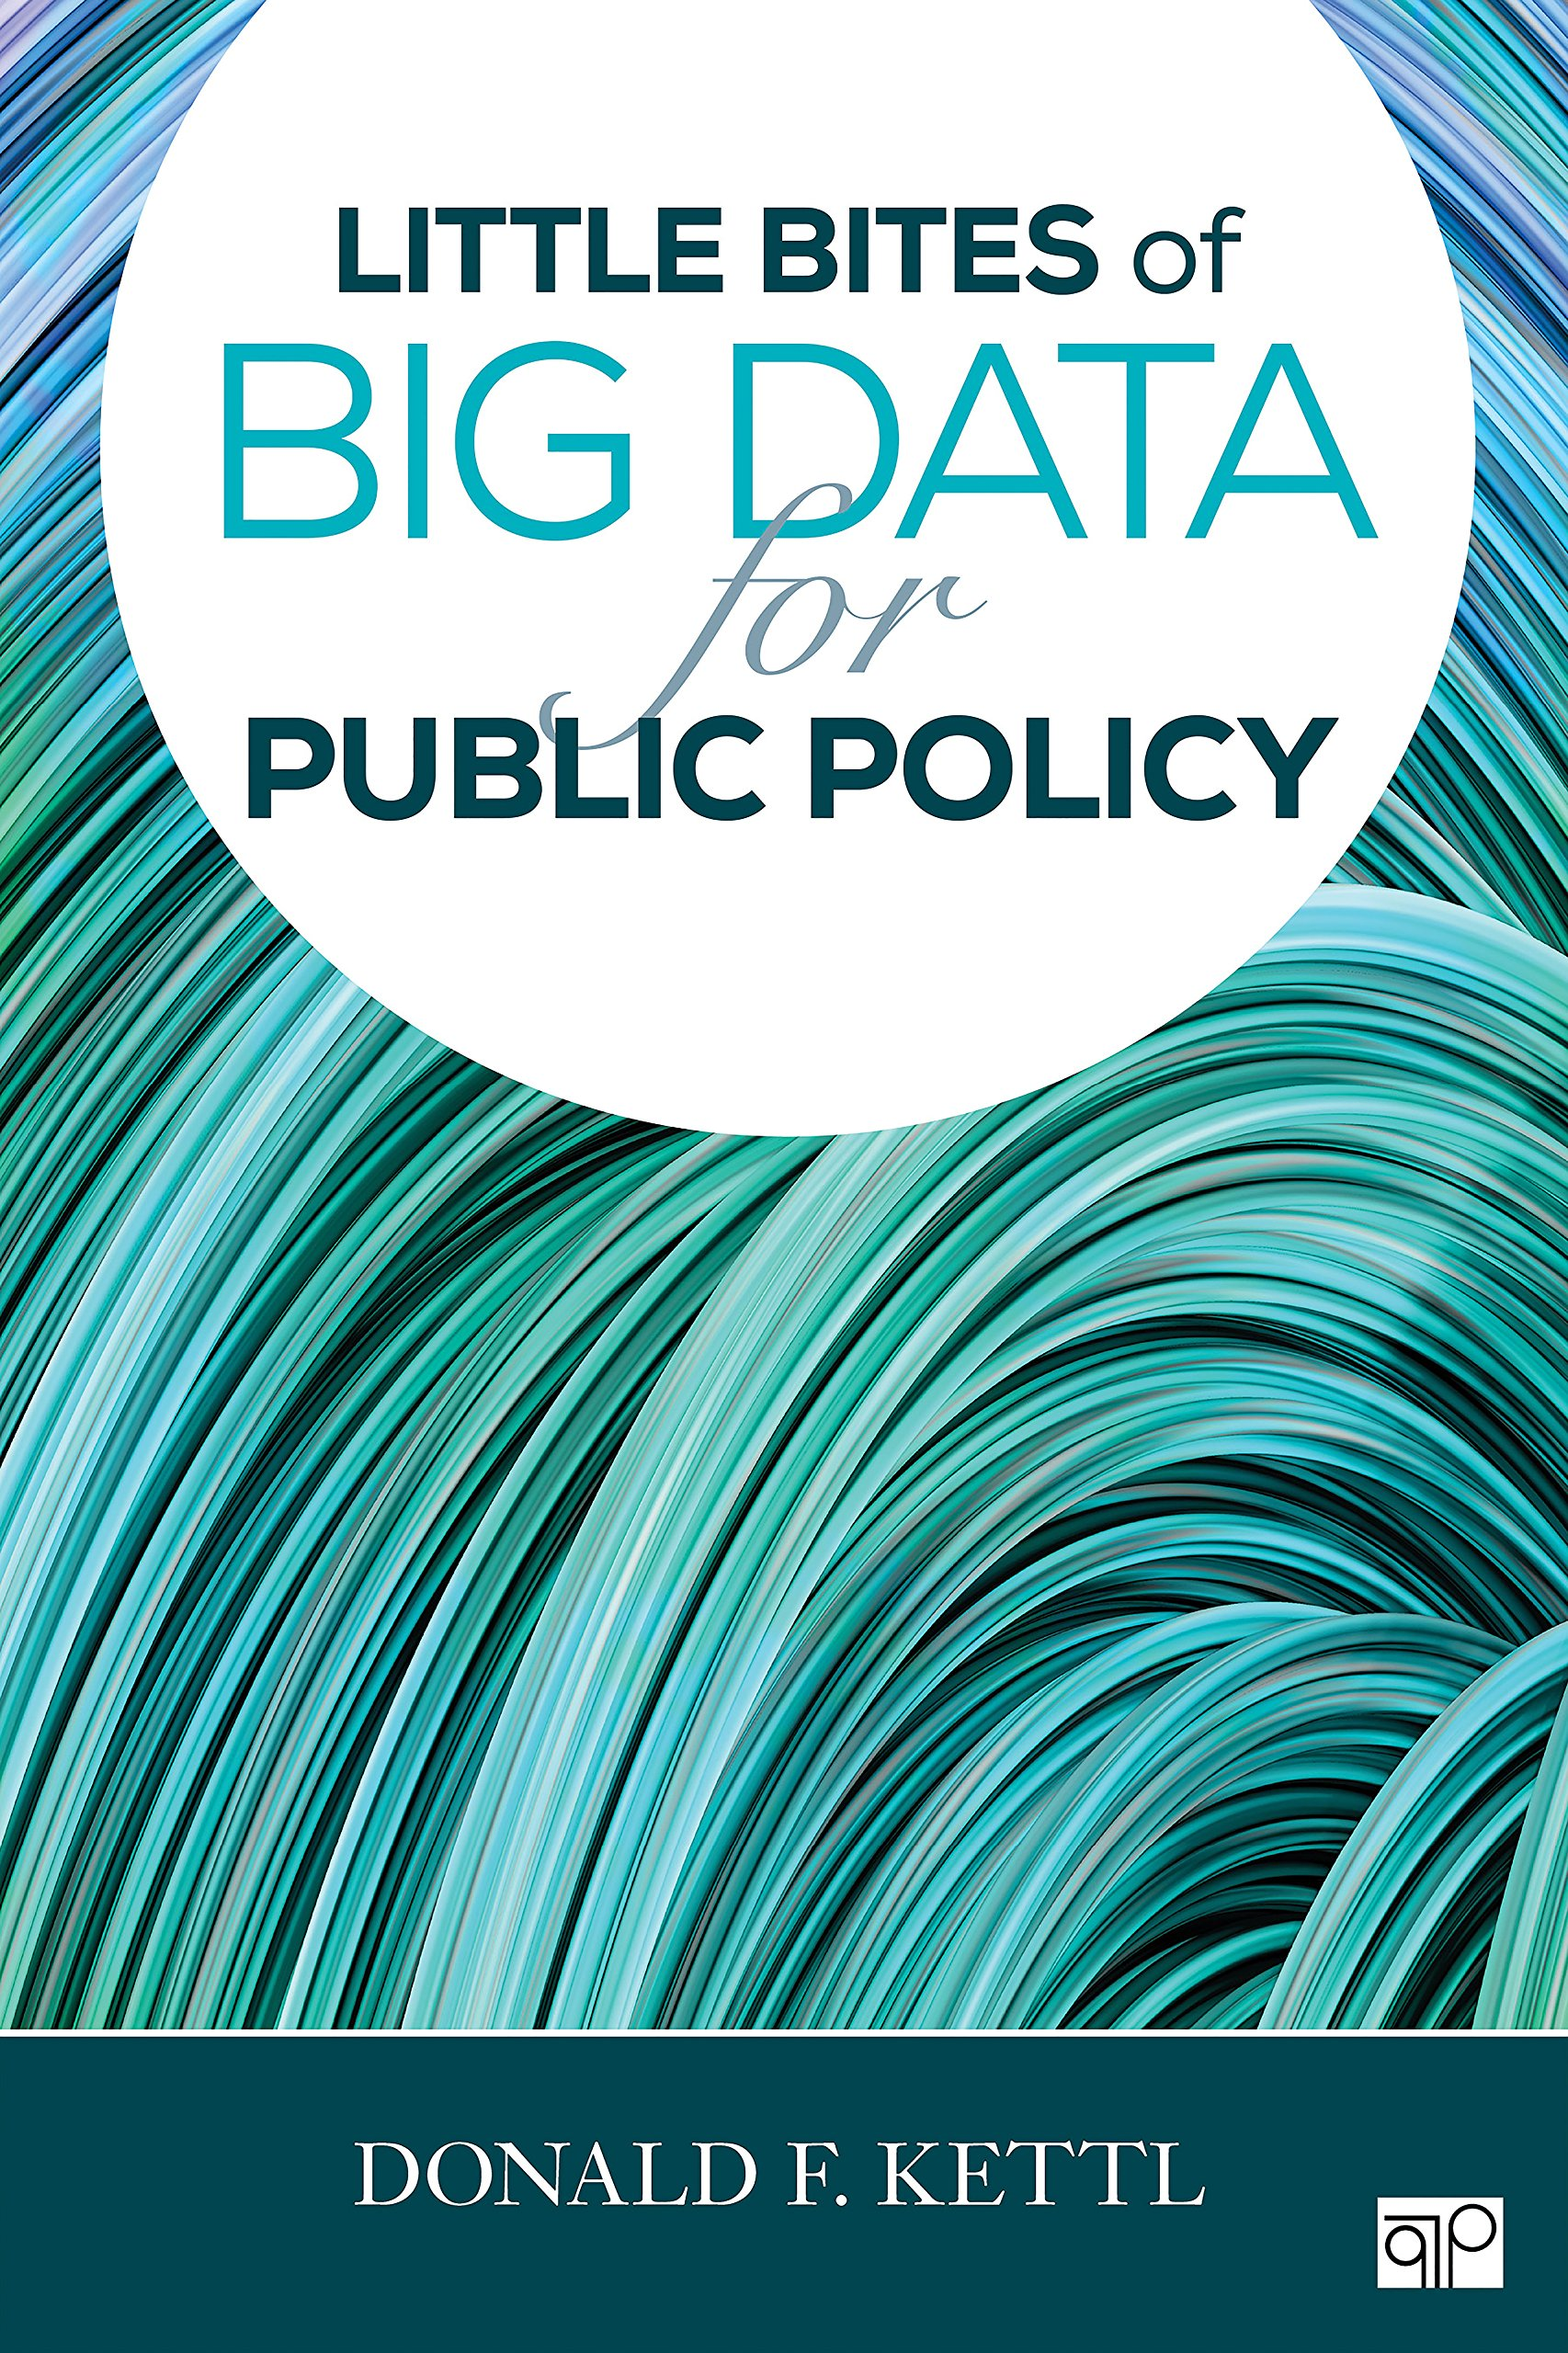 Image OfLittle Bites Of Big Data For Public Policy (English Edition)